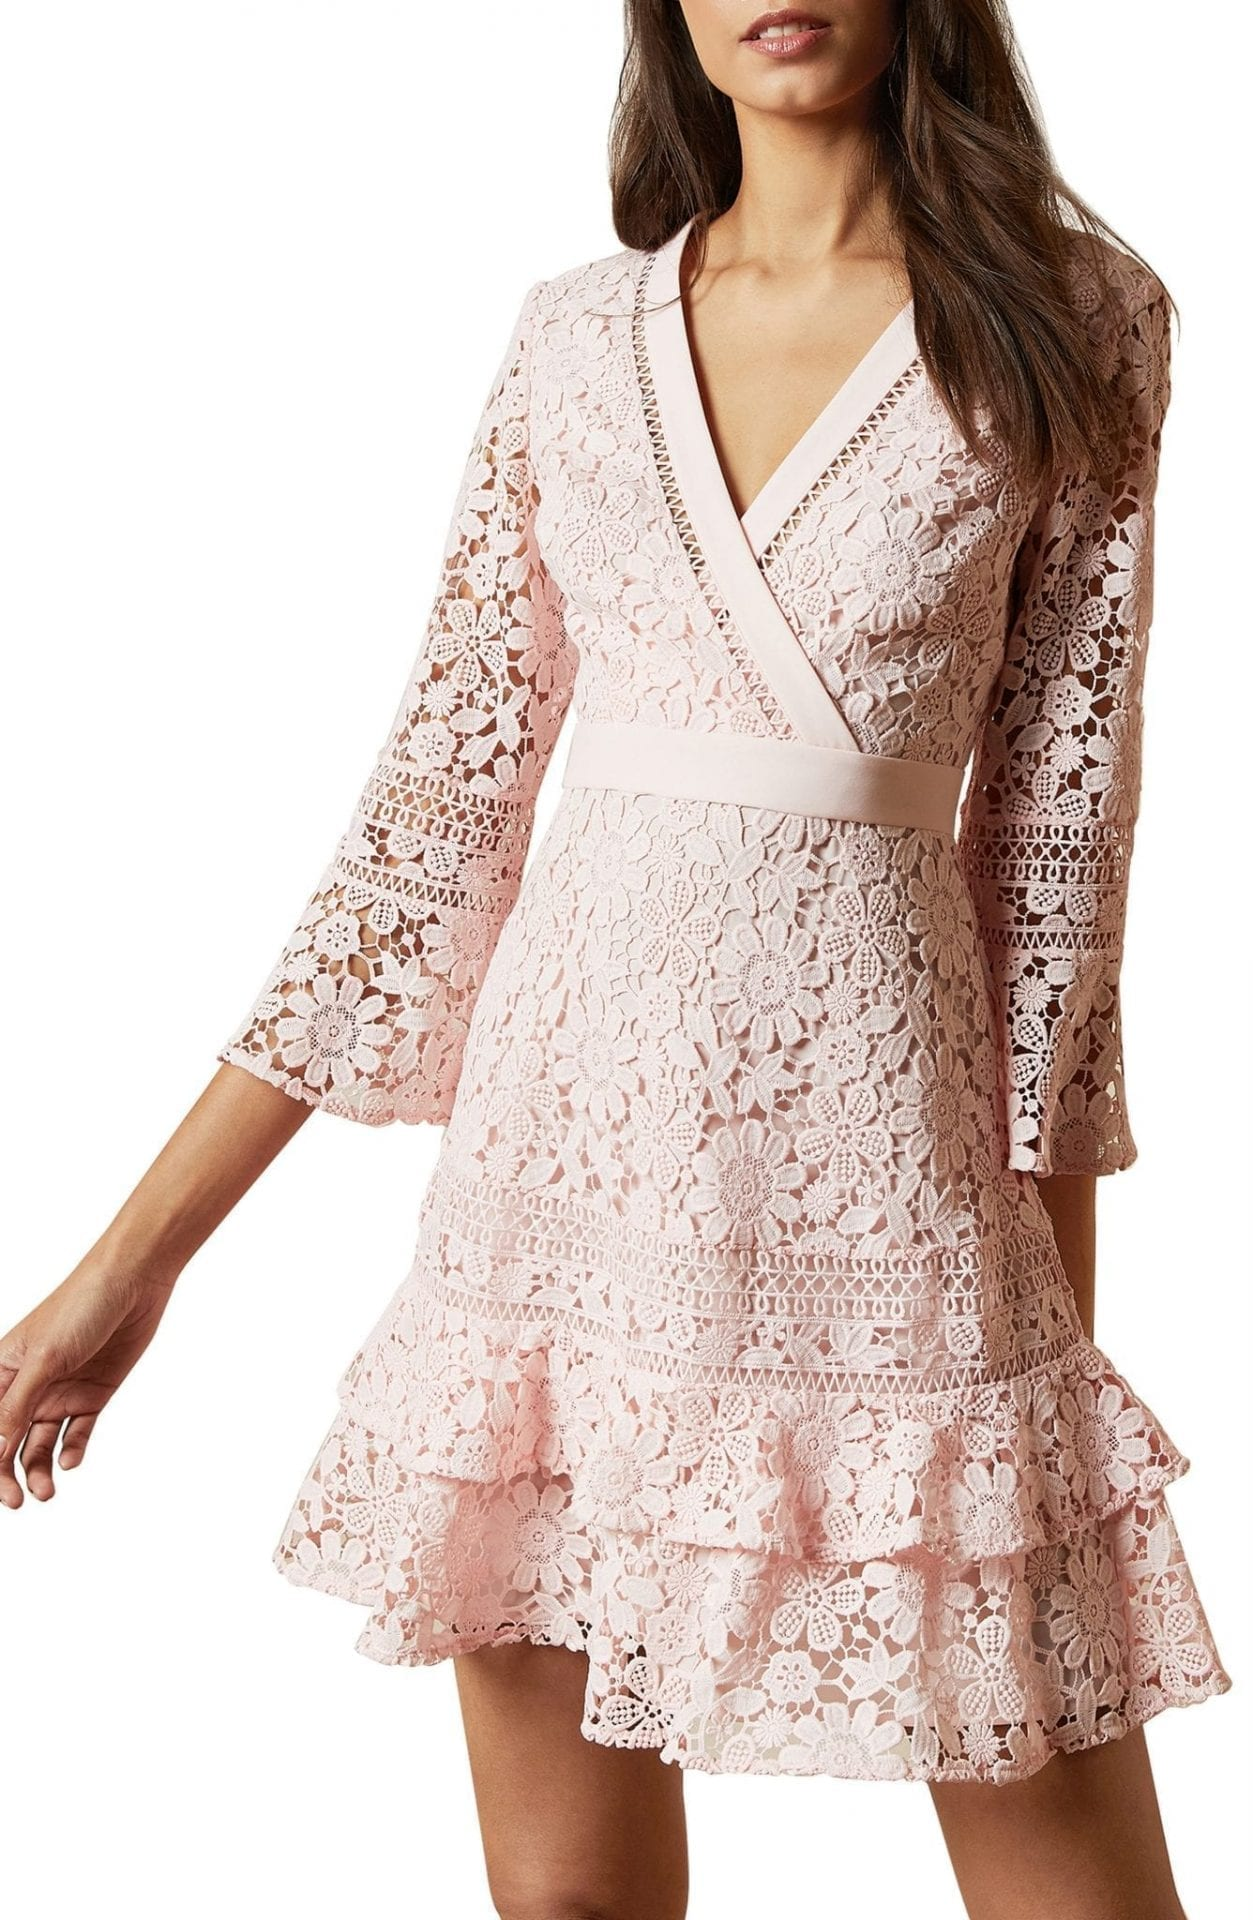 TED BAKER LONDON Nello Fit & Flare Lace Dress